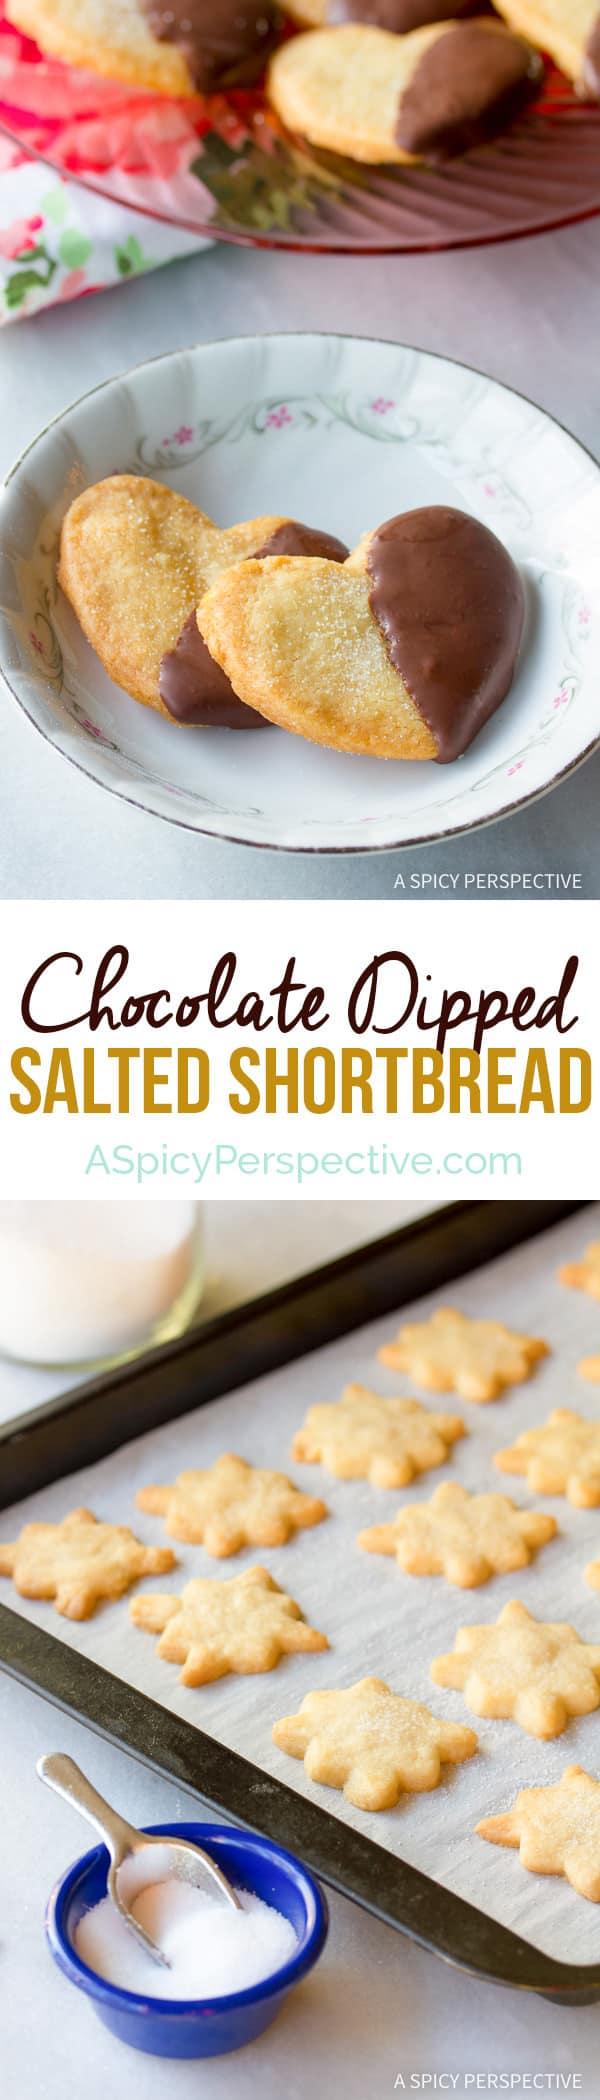 Easy Chocolate Dipped Salty Shortbread Cookies | ASpicyPerspective.com (Great for any holiday!)